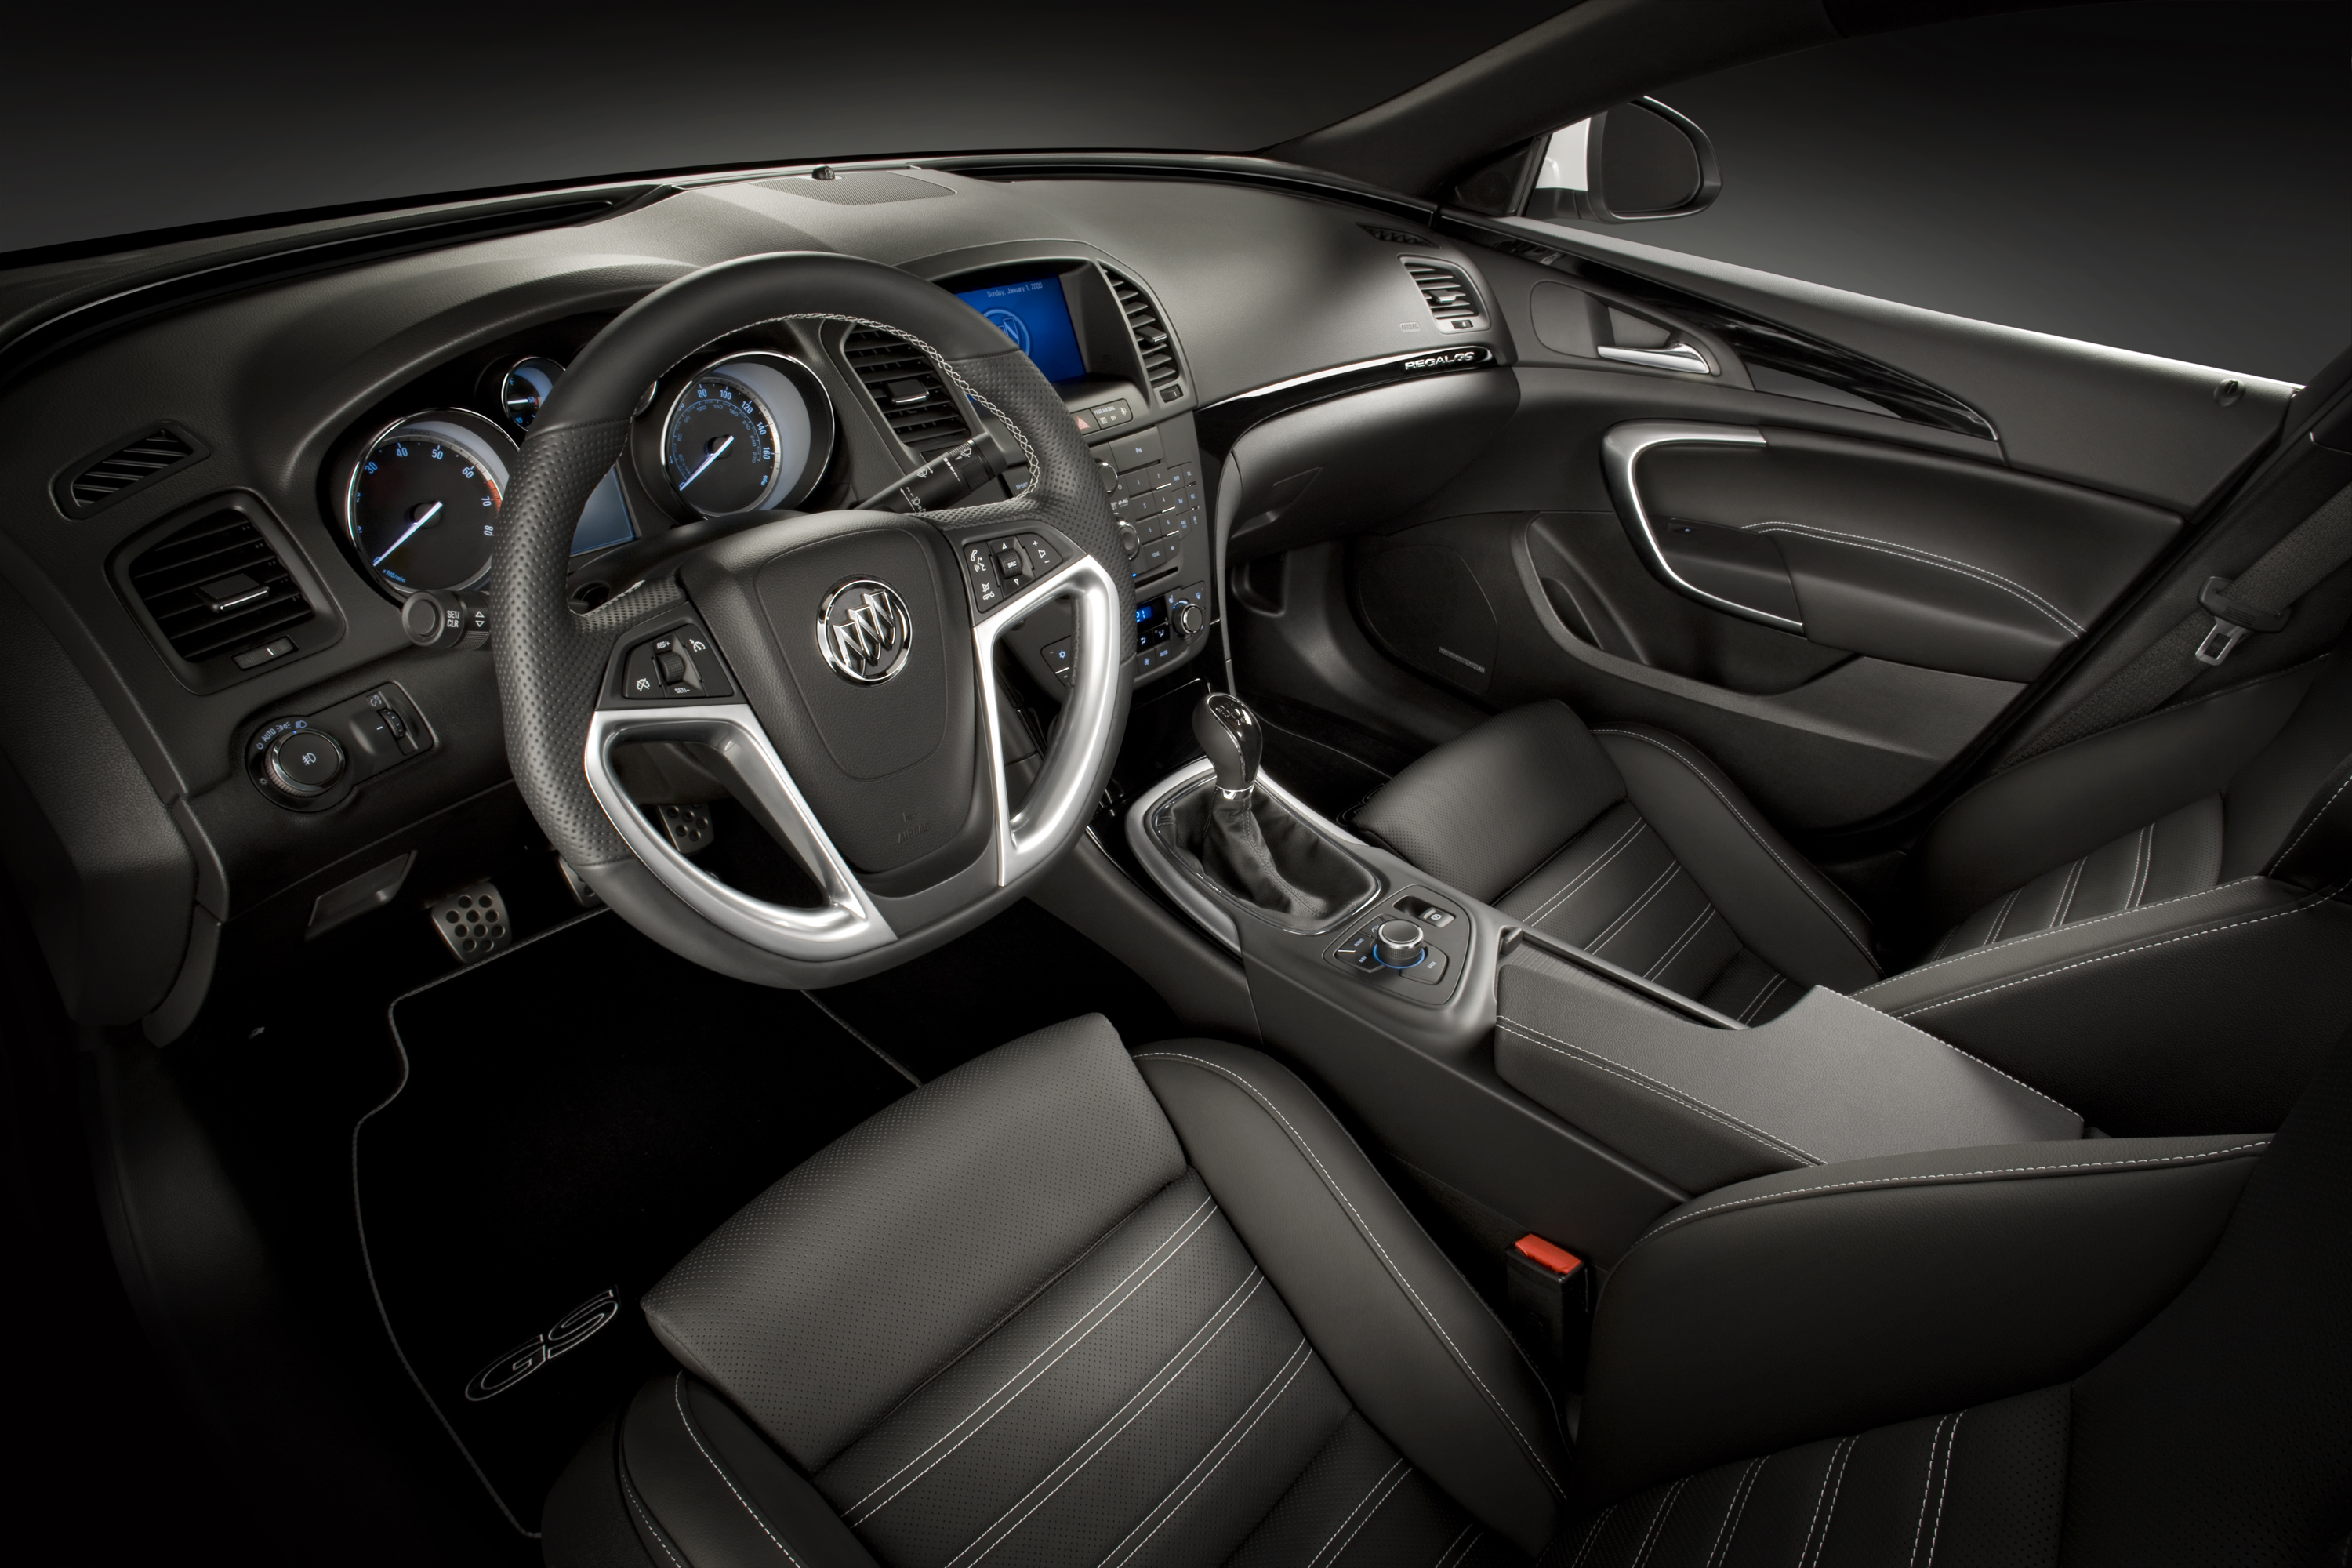 Buick Regal Gs Interior. Buick Regal GS Concept